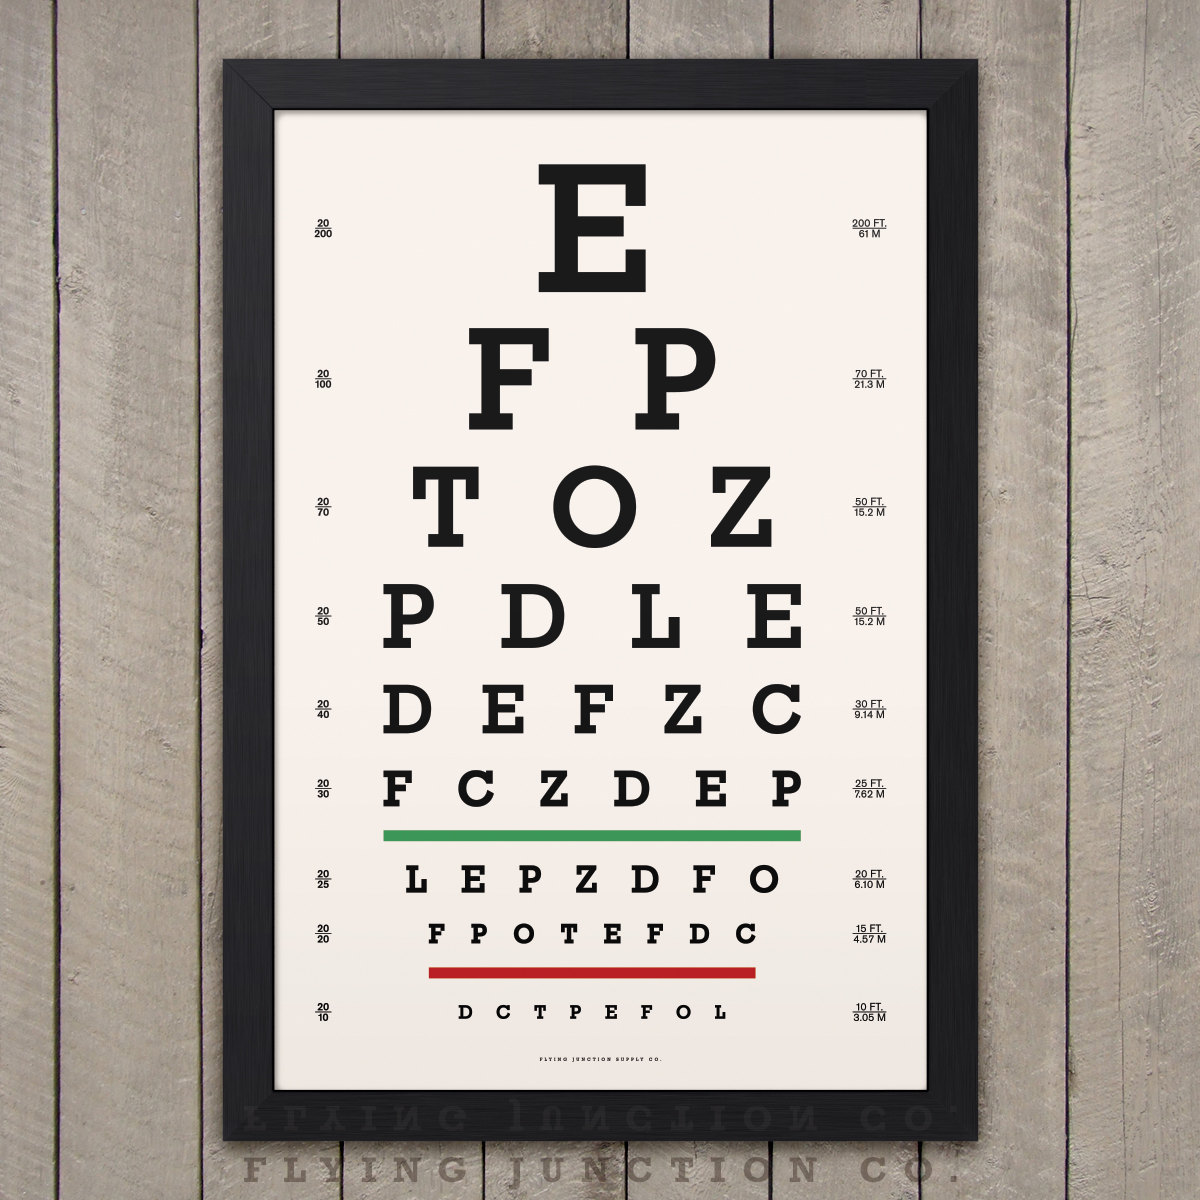 It's just an image of Sly Printable Snellen Eye Chart